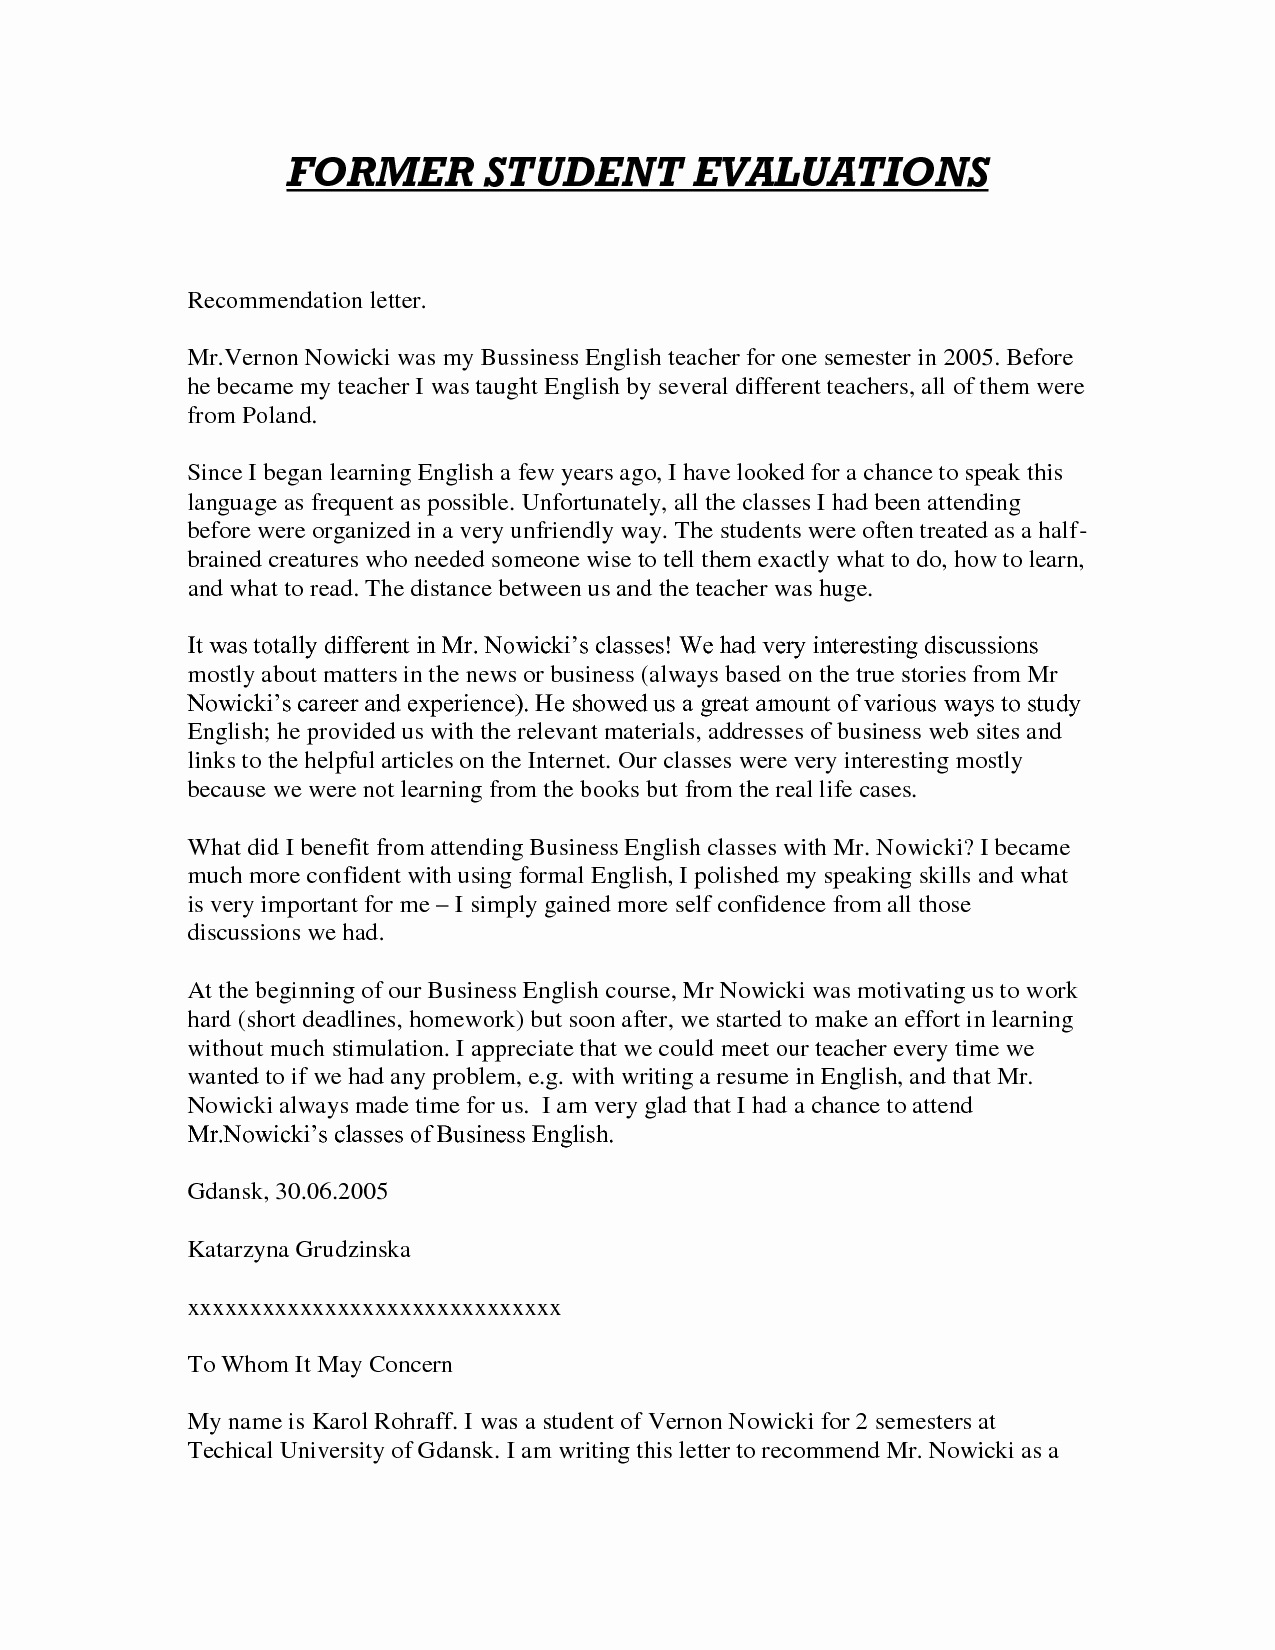 Teacher Letter Of Recommendation Sample Elegant Sample Letter Of Re Mendation for Teacher